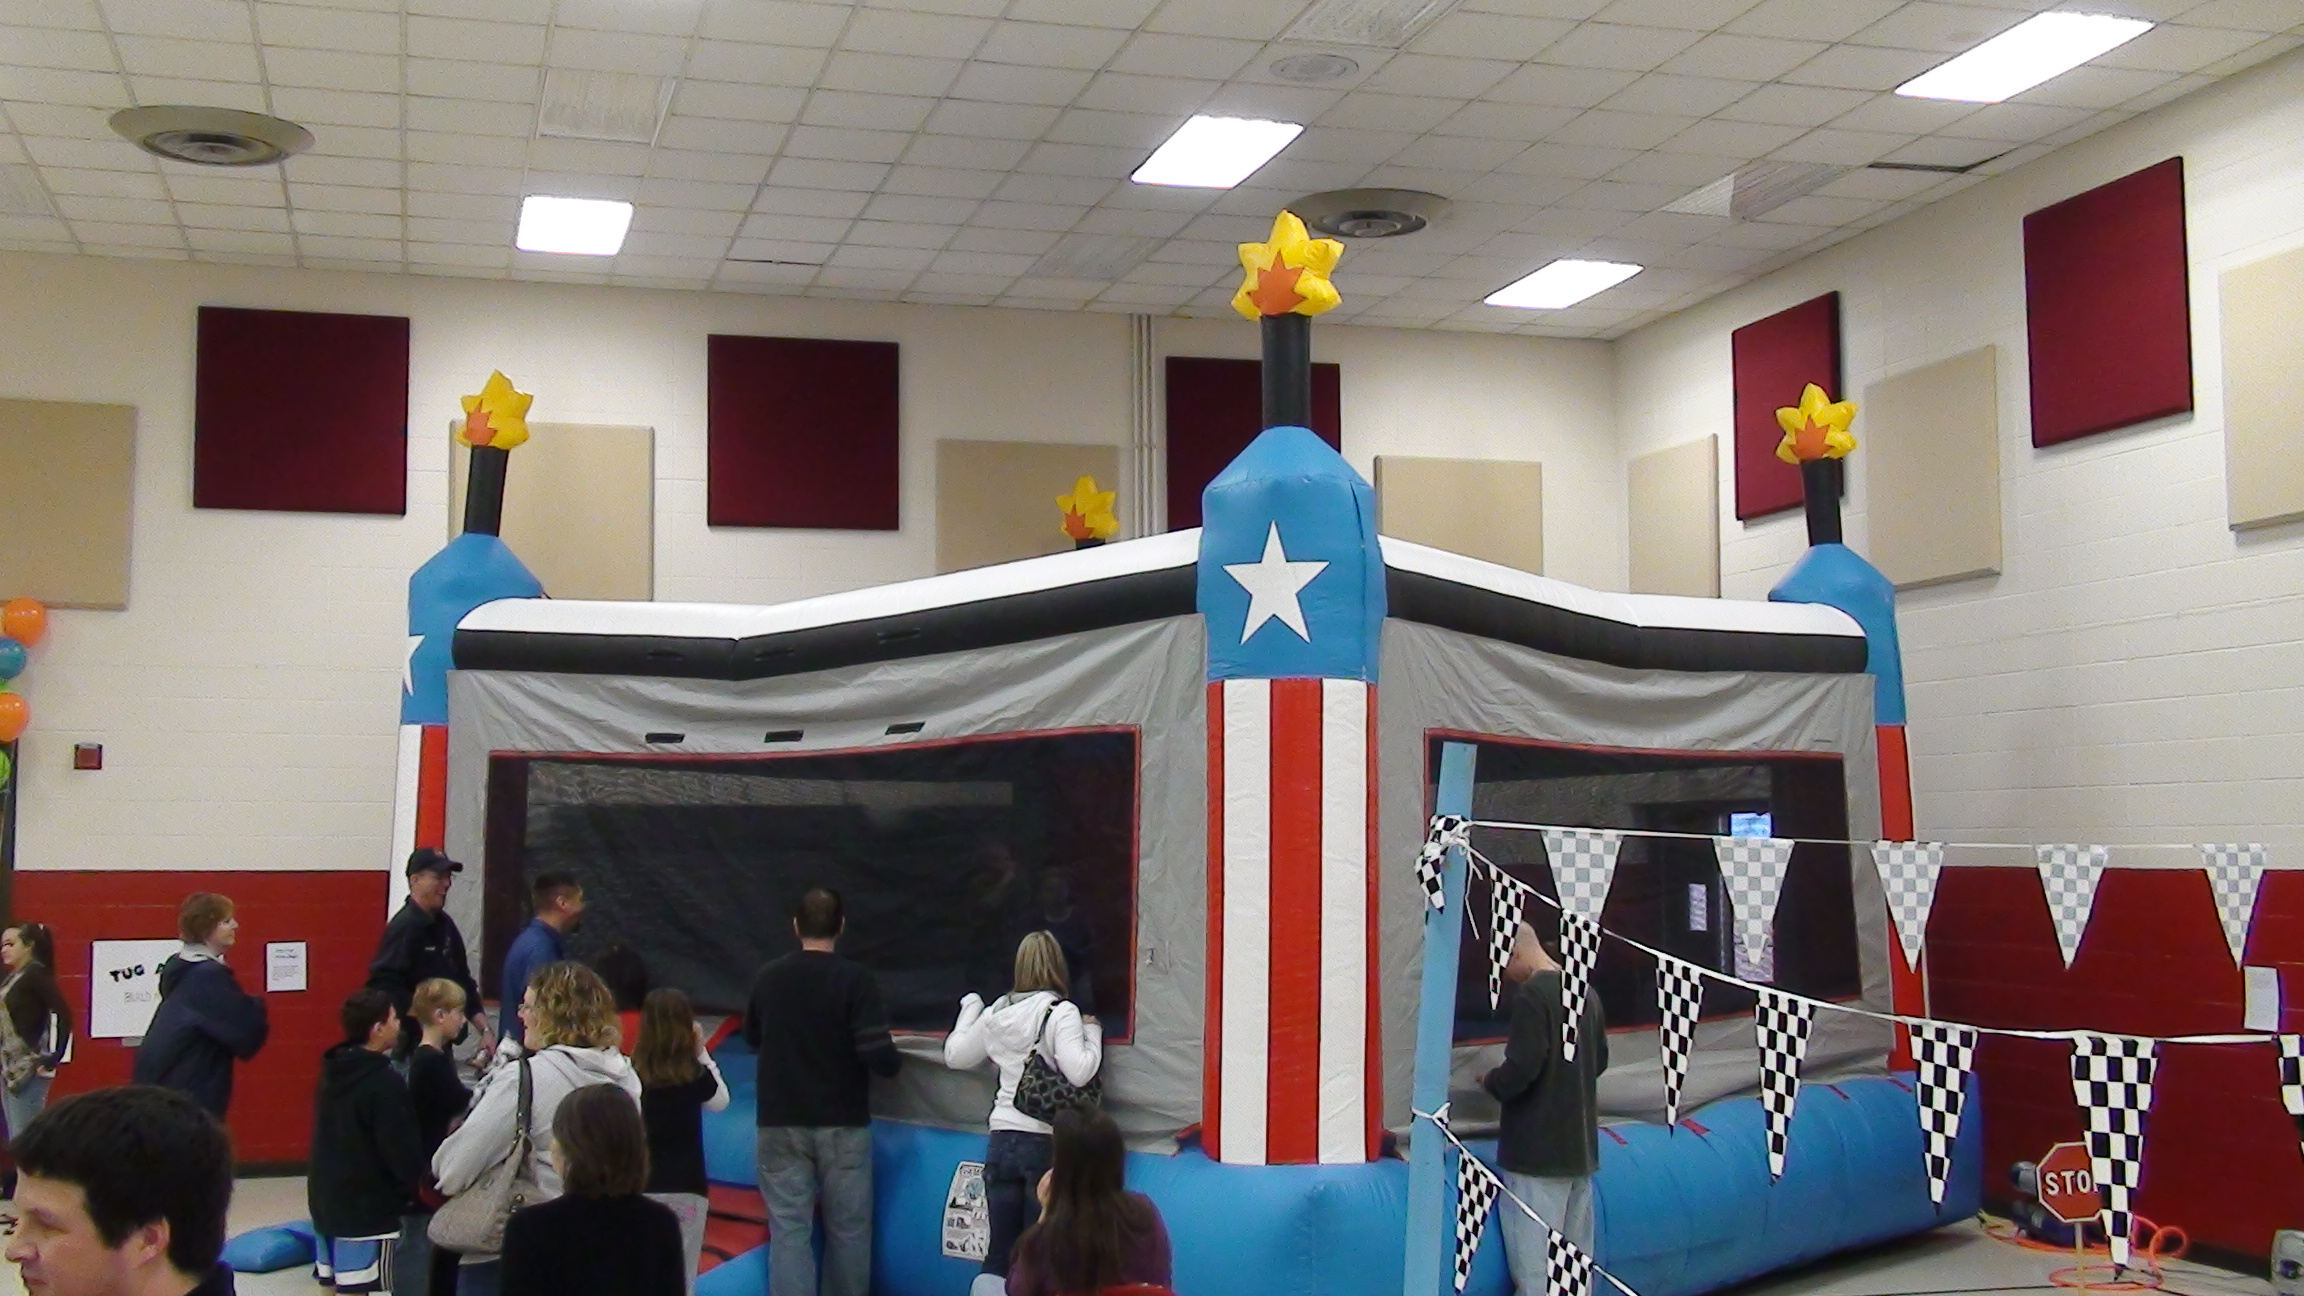 20'x20' Bounce House GIANT DYNAMITE